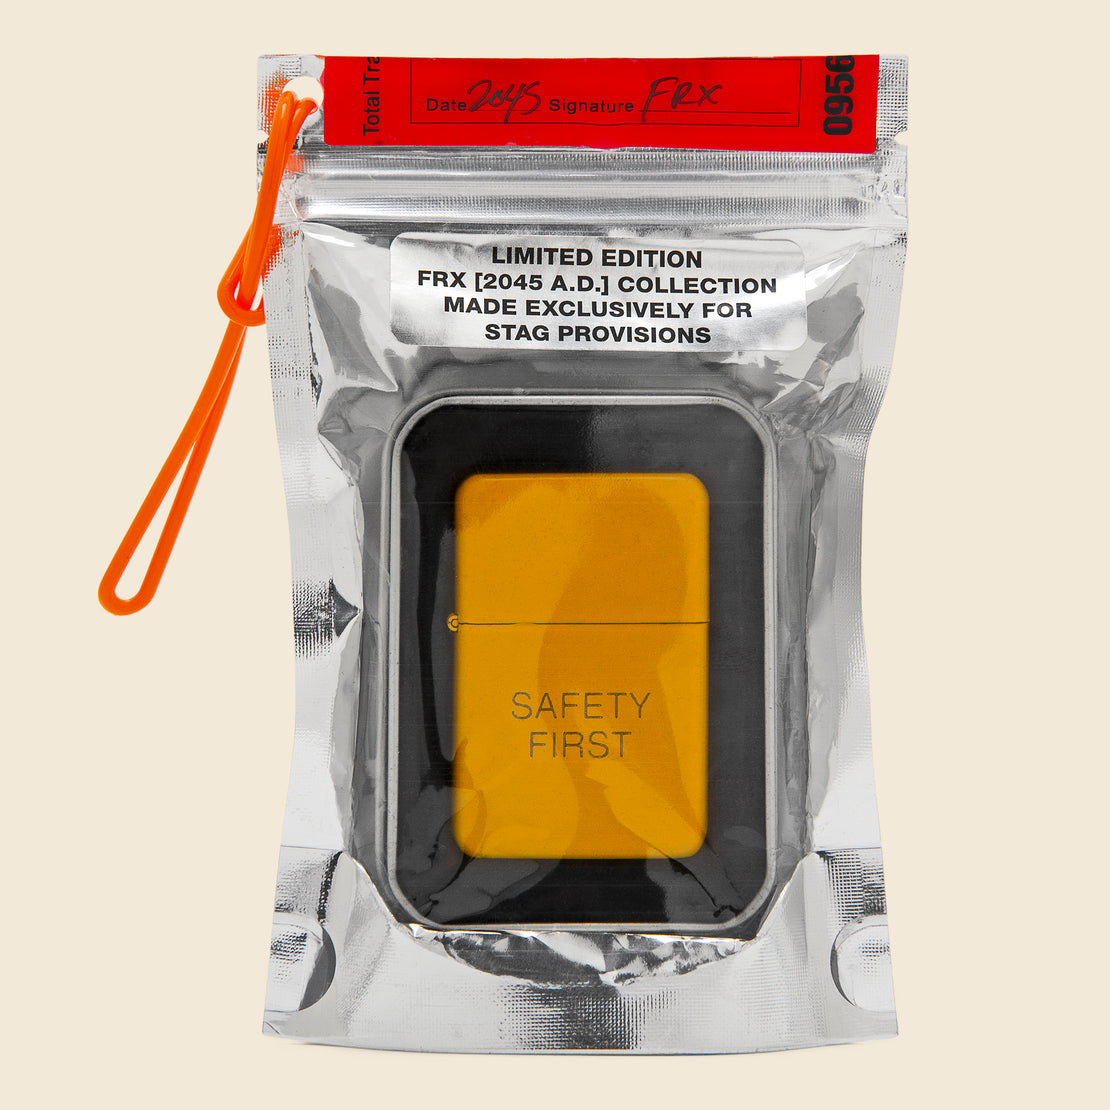 Field Rations Zippo Lighter - SAFETY FIRST